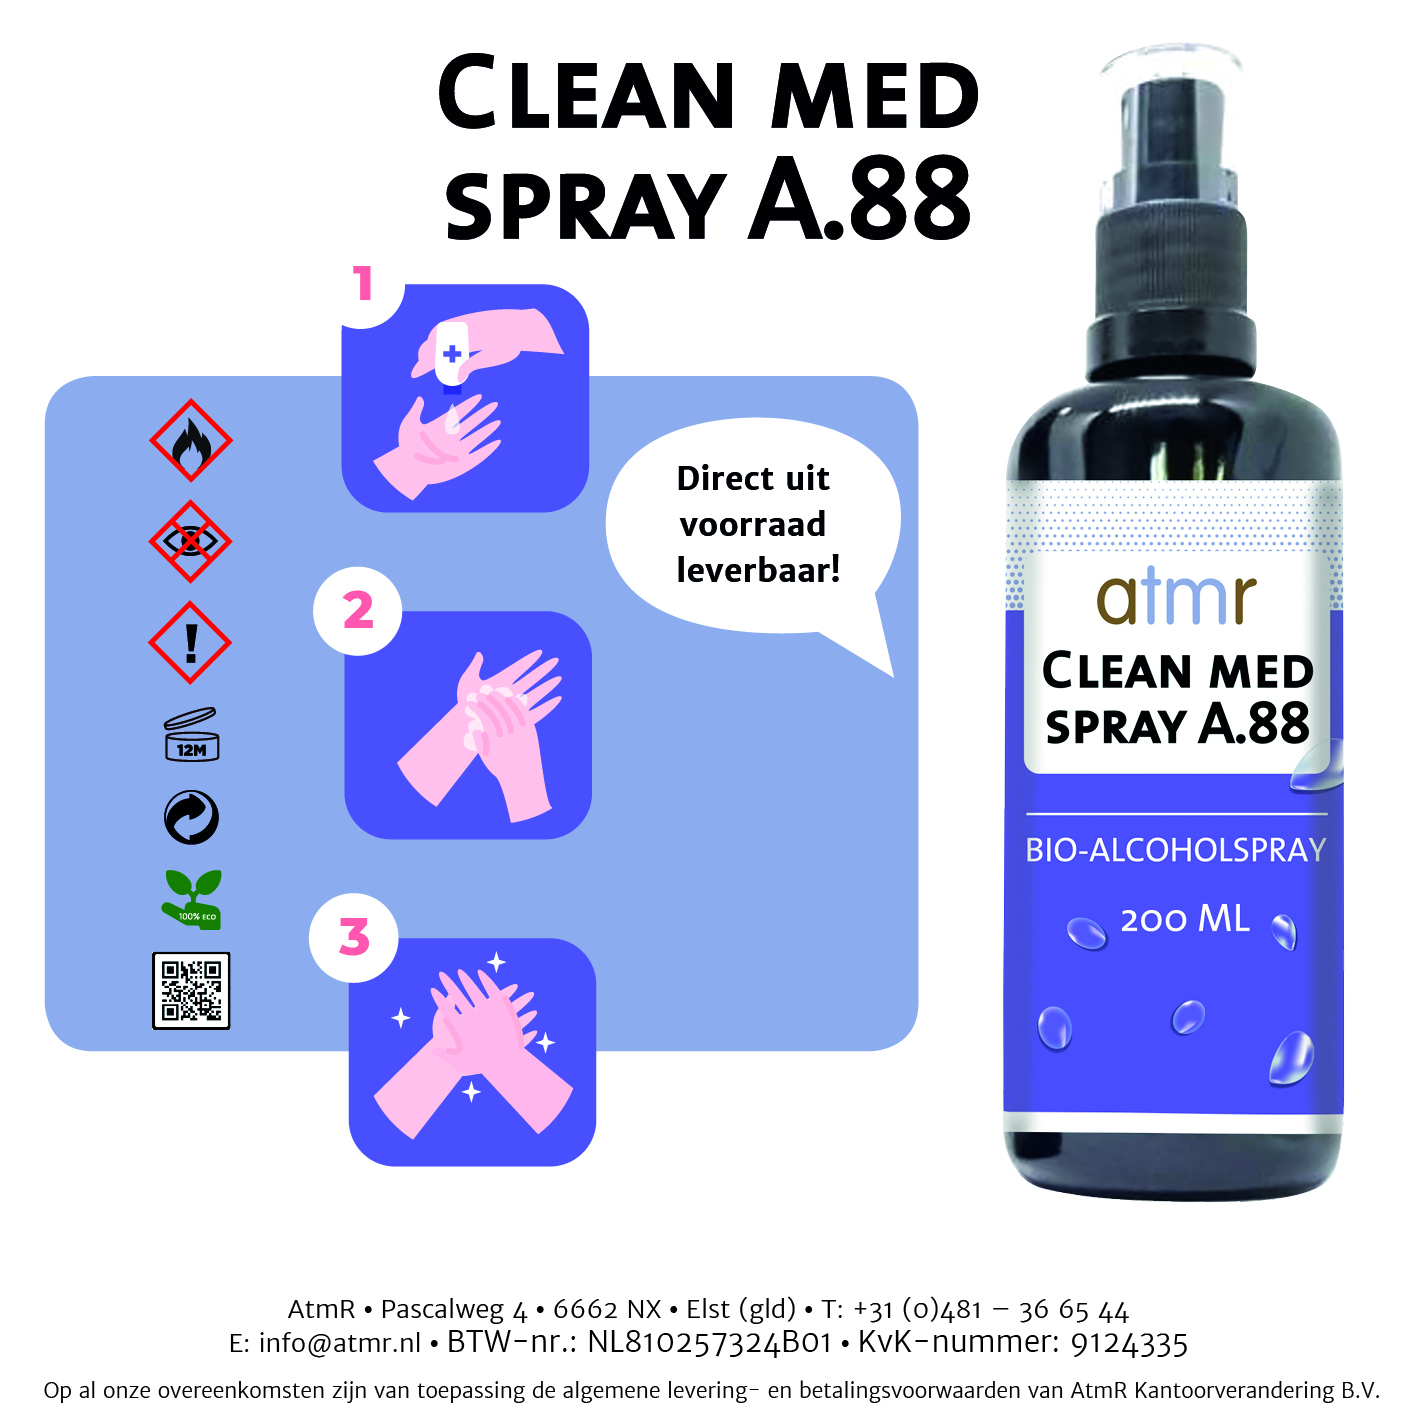 Atmr gifts clean med spray